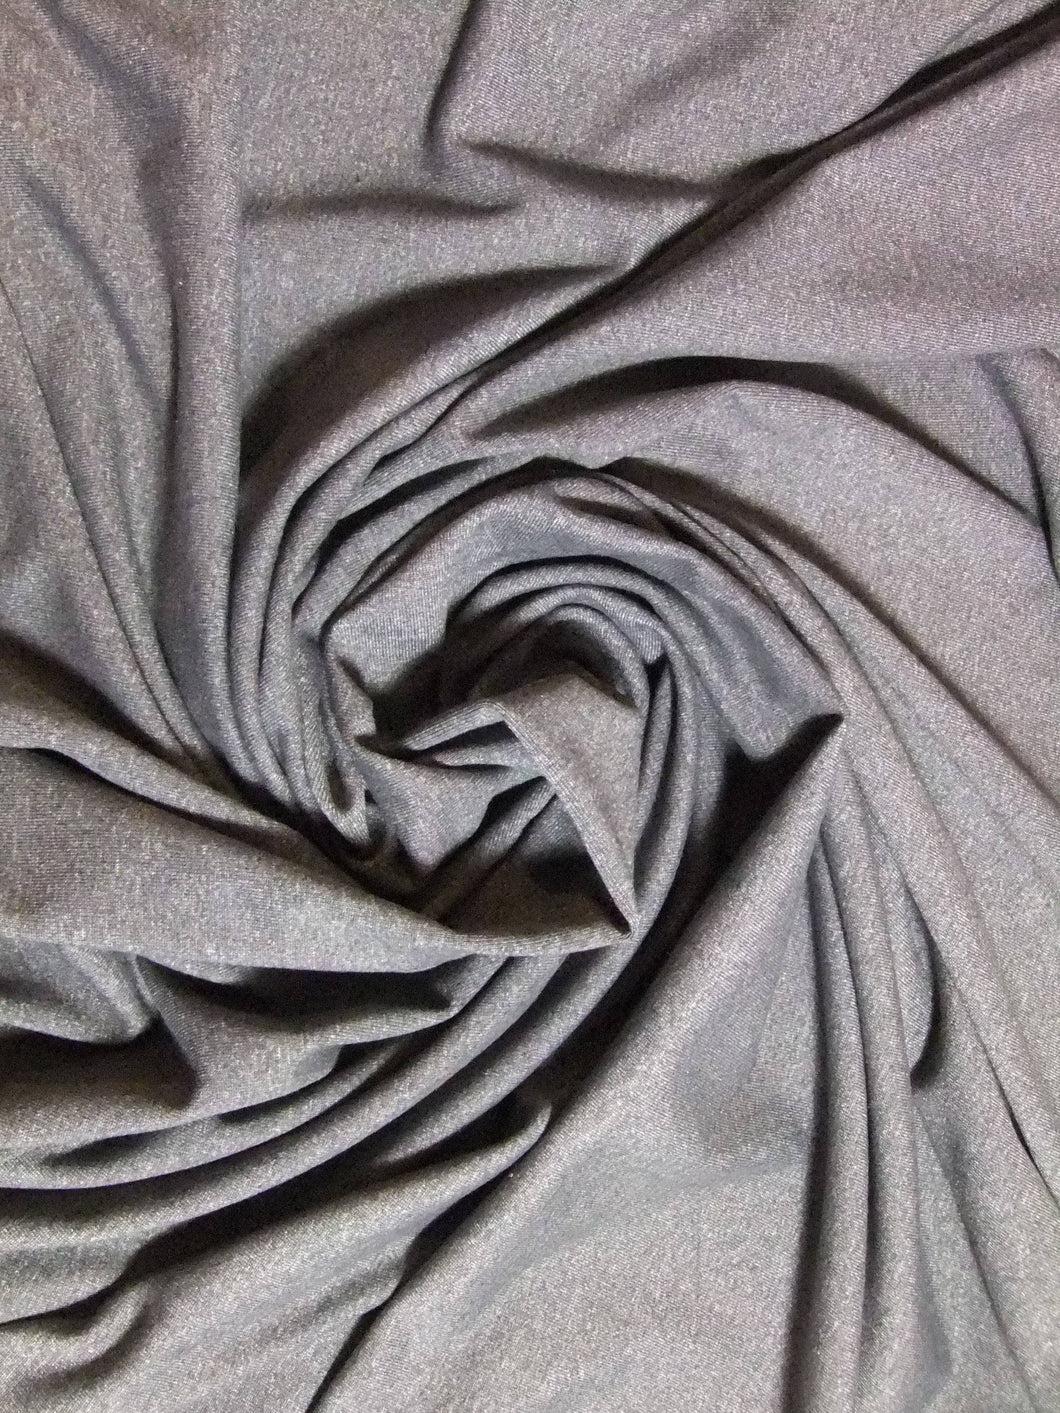 Remnant: Double Brushed Spandex - Grey Marle